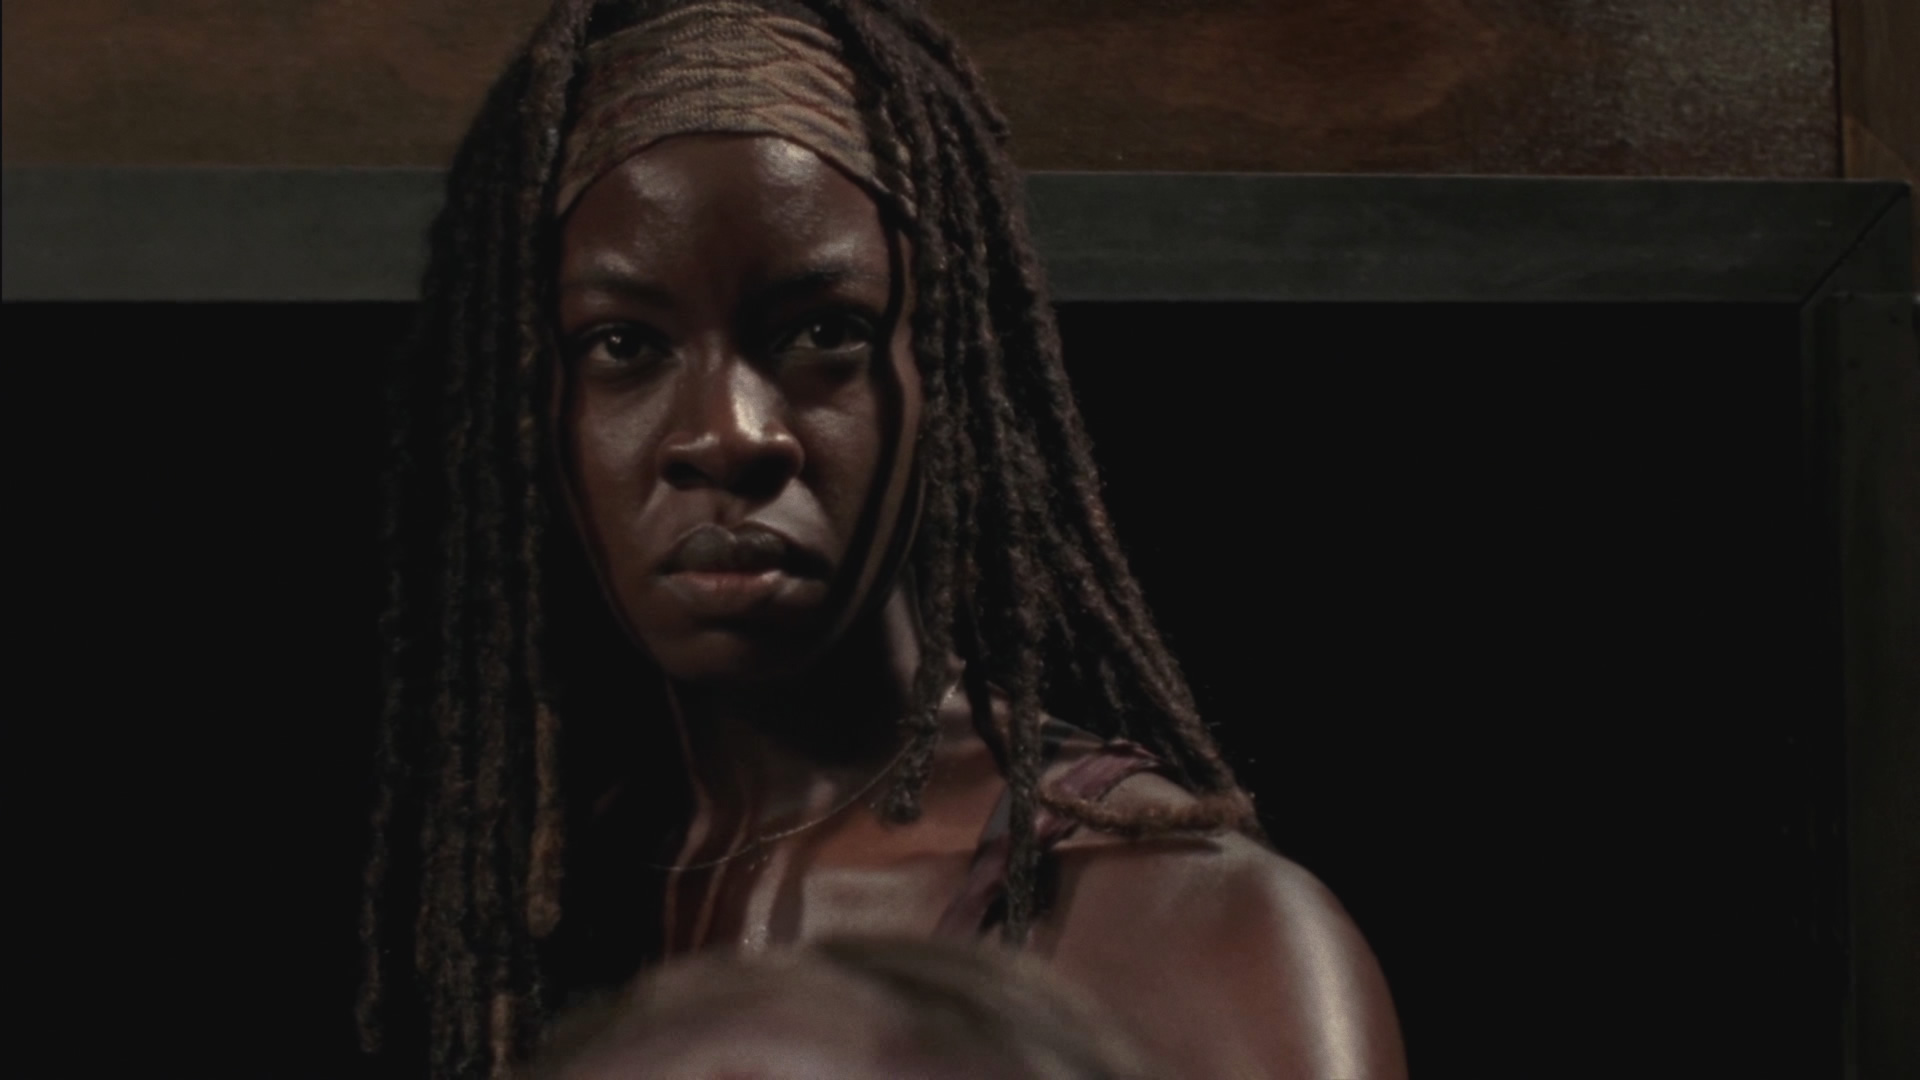 'The Walking Dead' Season 3 Episode 8 Captures